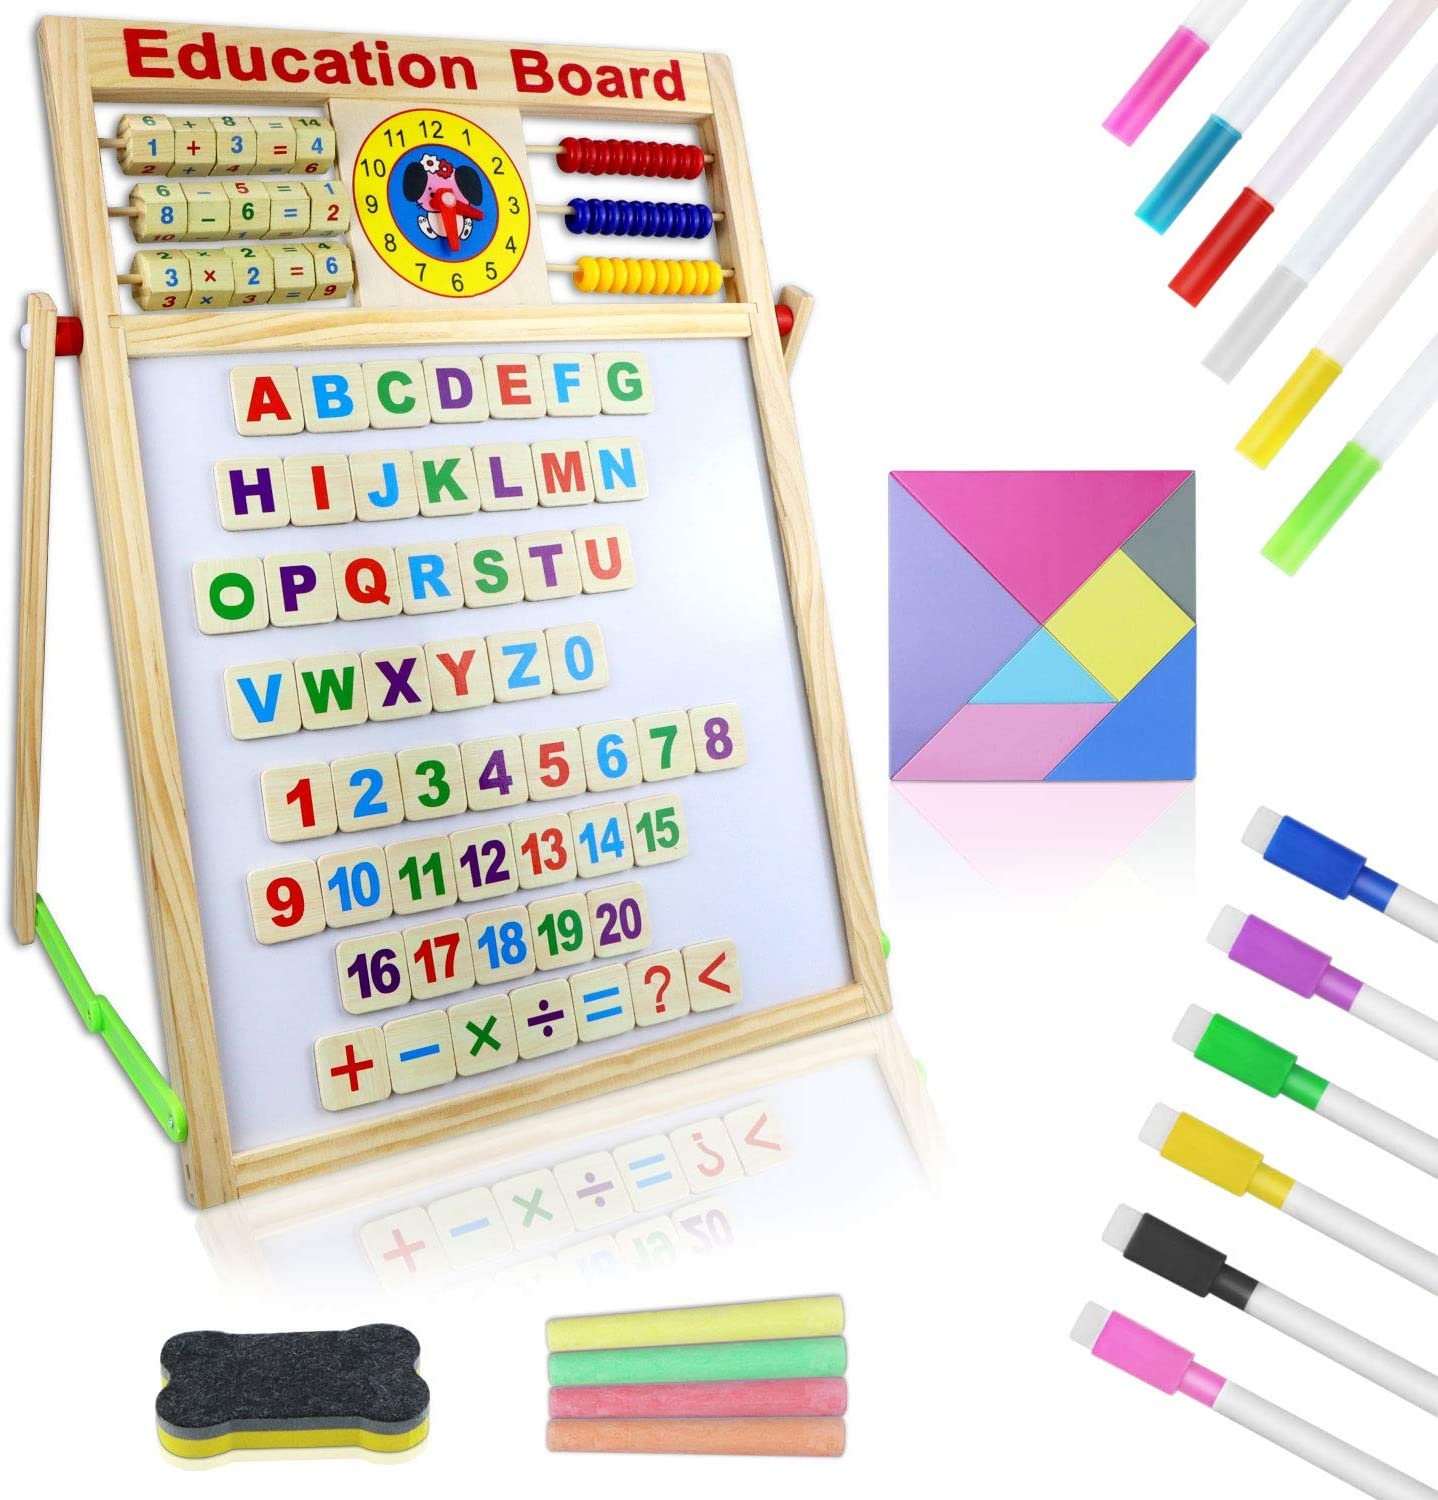 Wooden Art Easel Classroom Home Education Toddlers Toys Gifts Magnetic Whiteboard and Chalkboard with ABC Magnets Alphabet Letters Number Learning Set Double Sided Tabletop Drawing Board for Kids